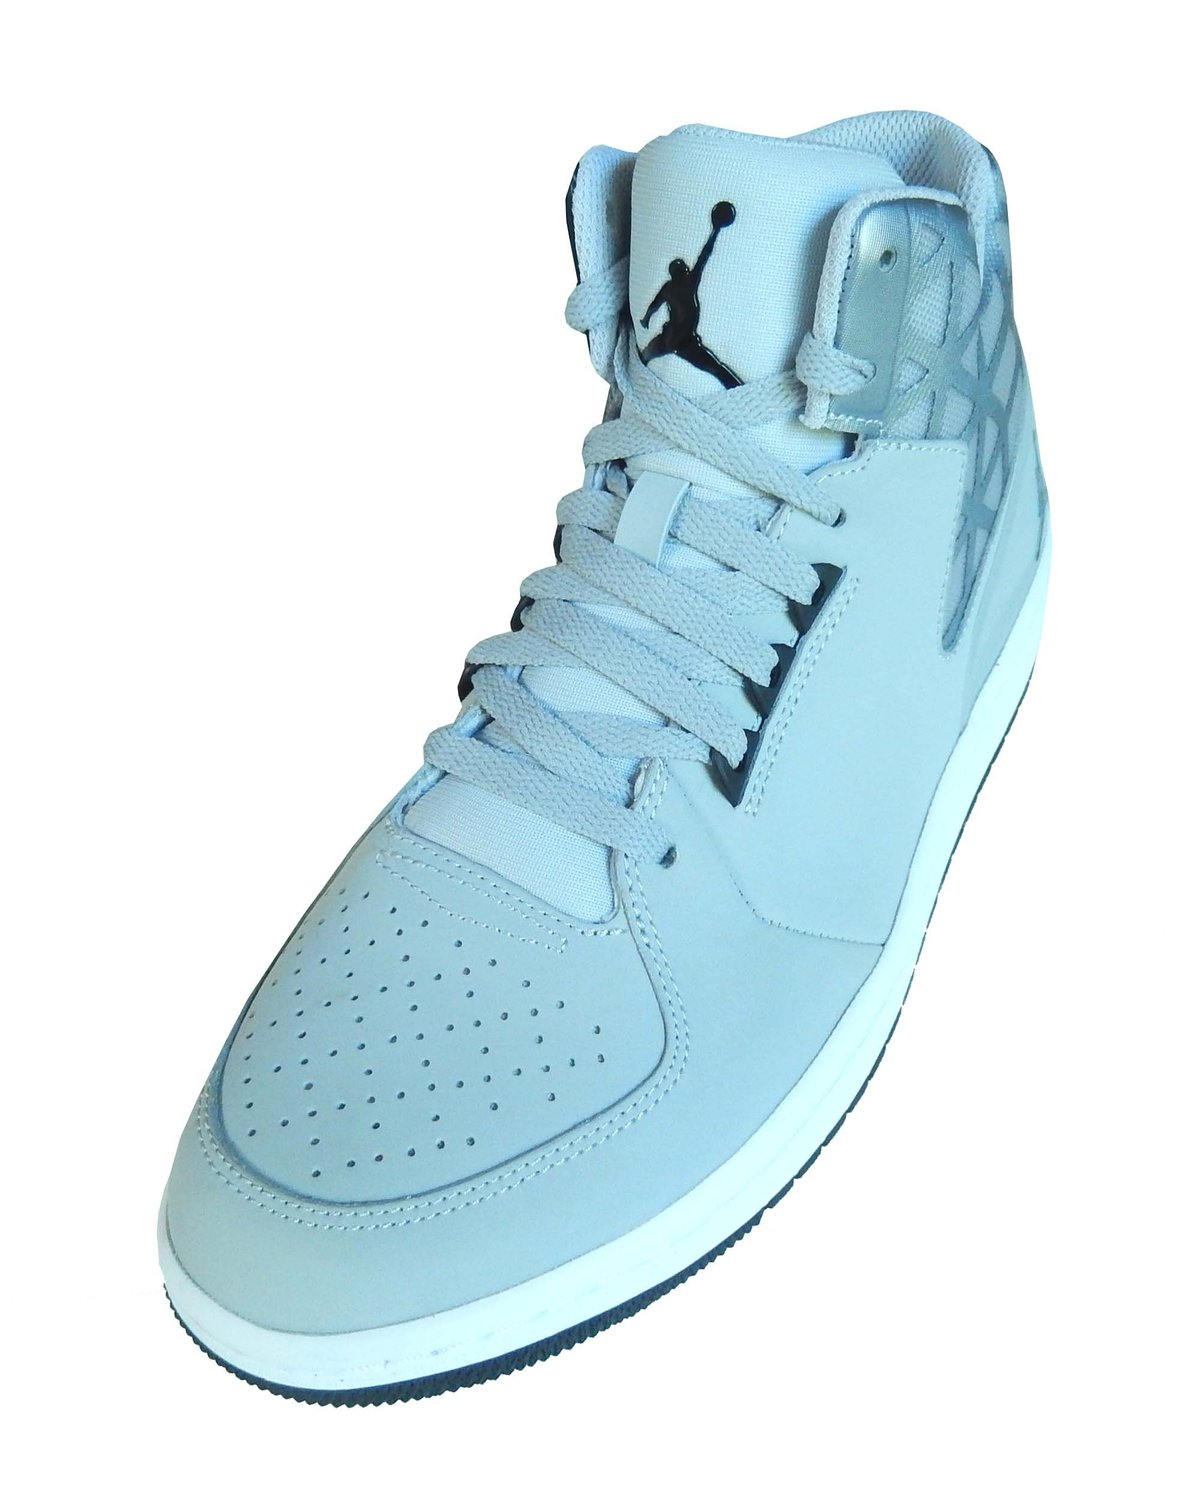 separation shoes 218fa a0654 Get Quotations · Nike Men s Jordan 1 Flight 3 Basketball Sneakers  Grey Black White